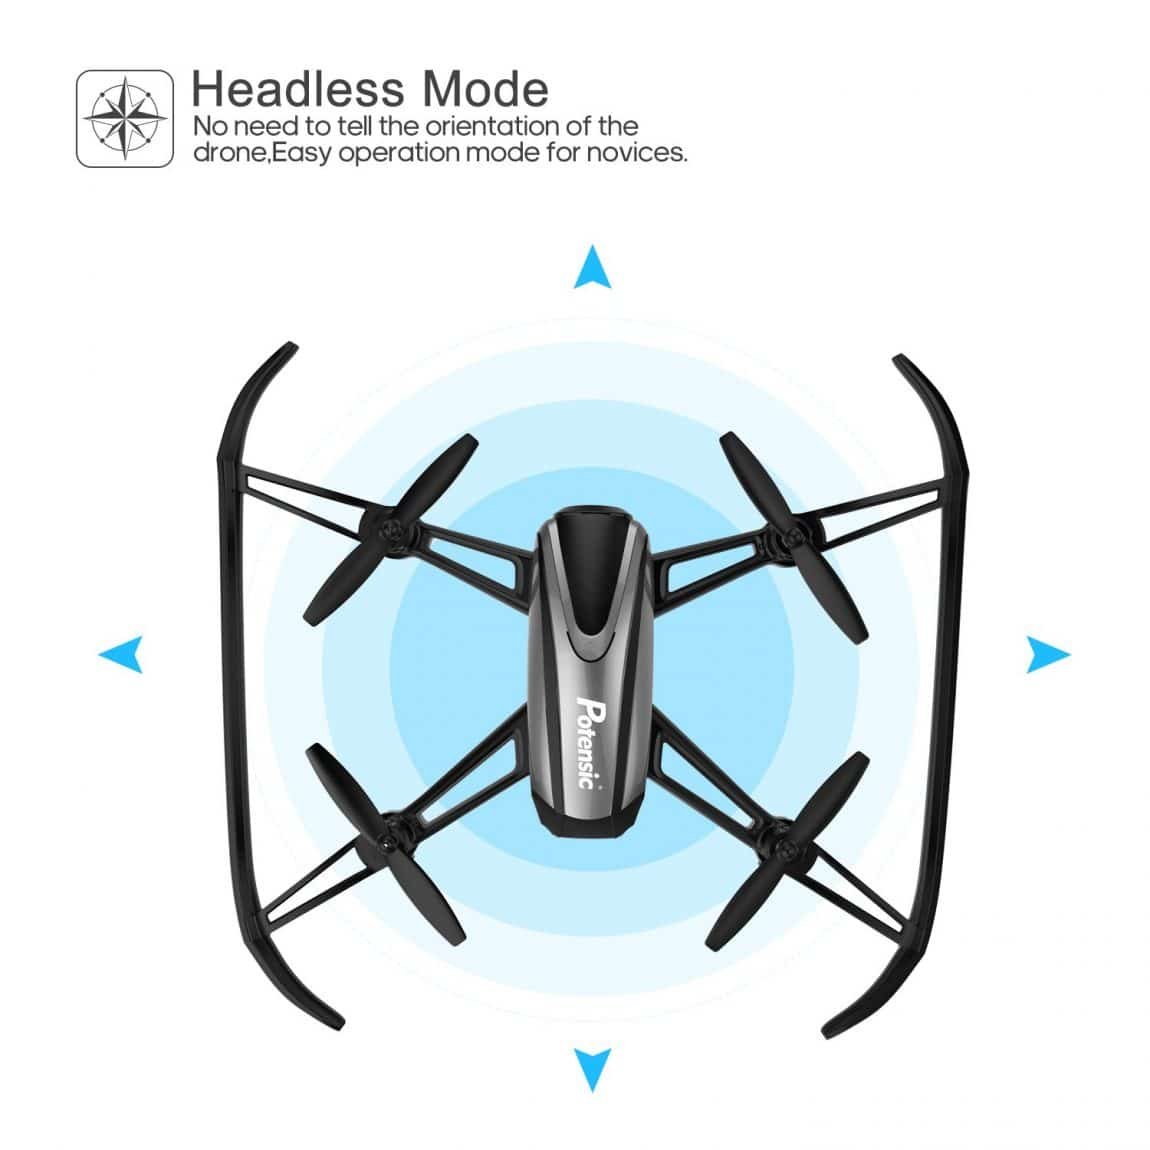 Headless Mode Camera Drone